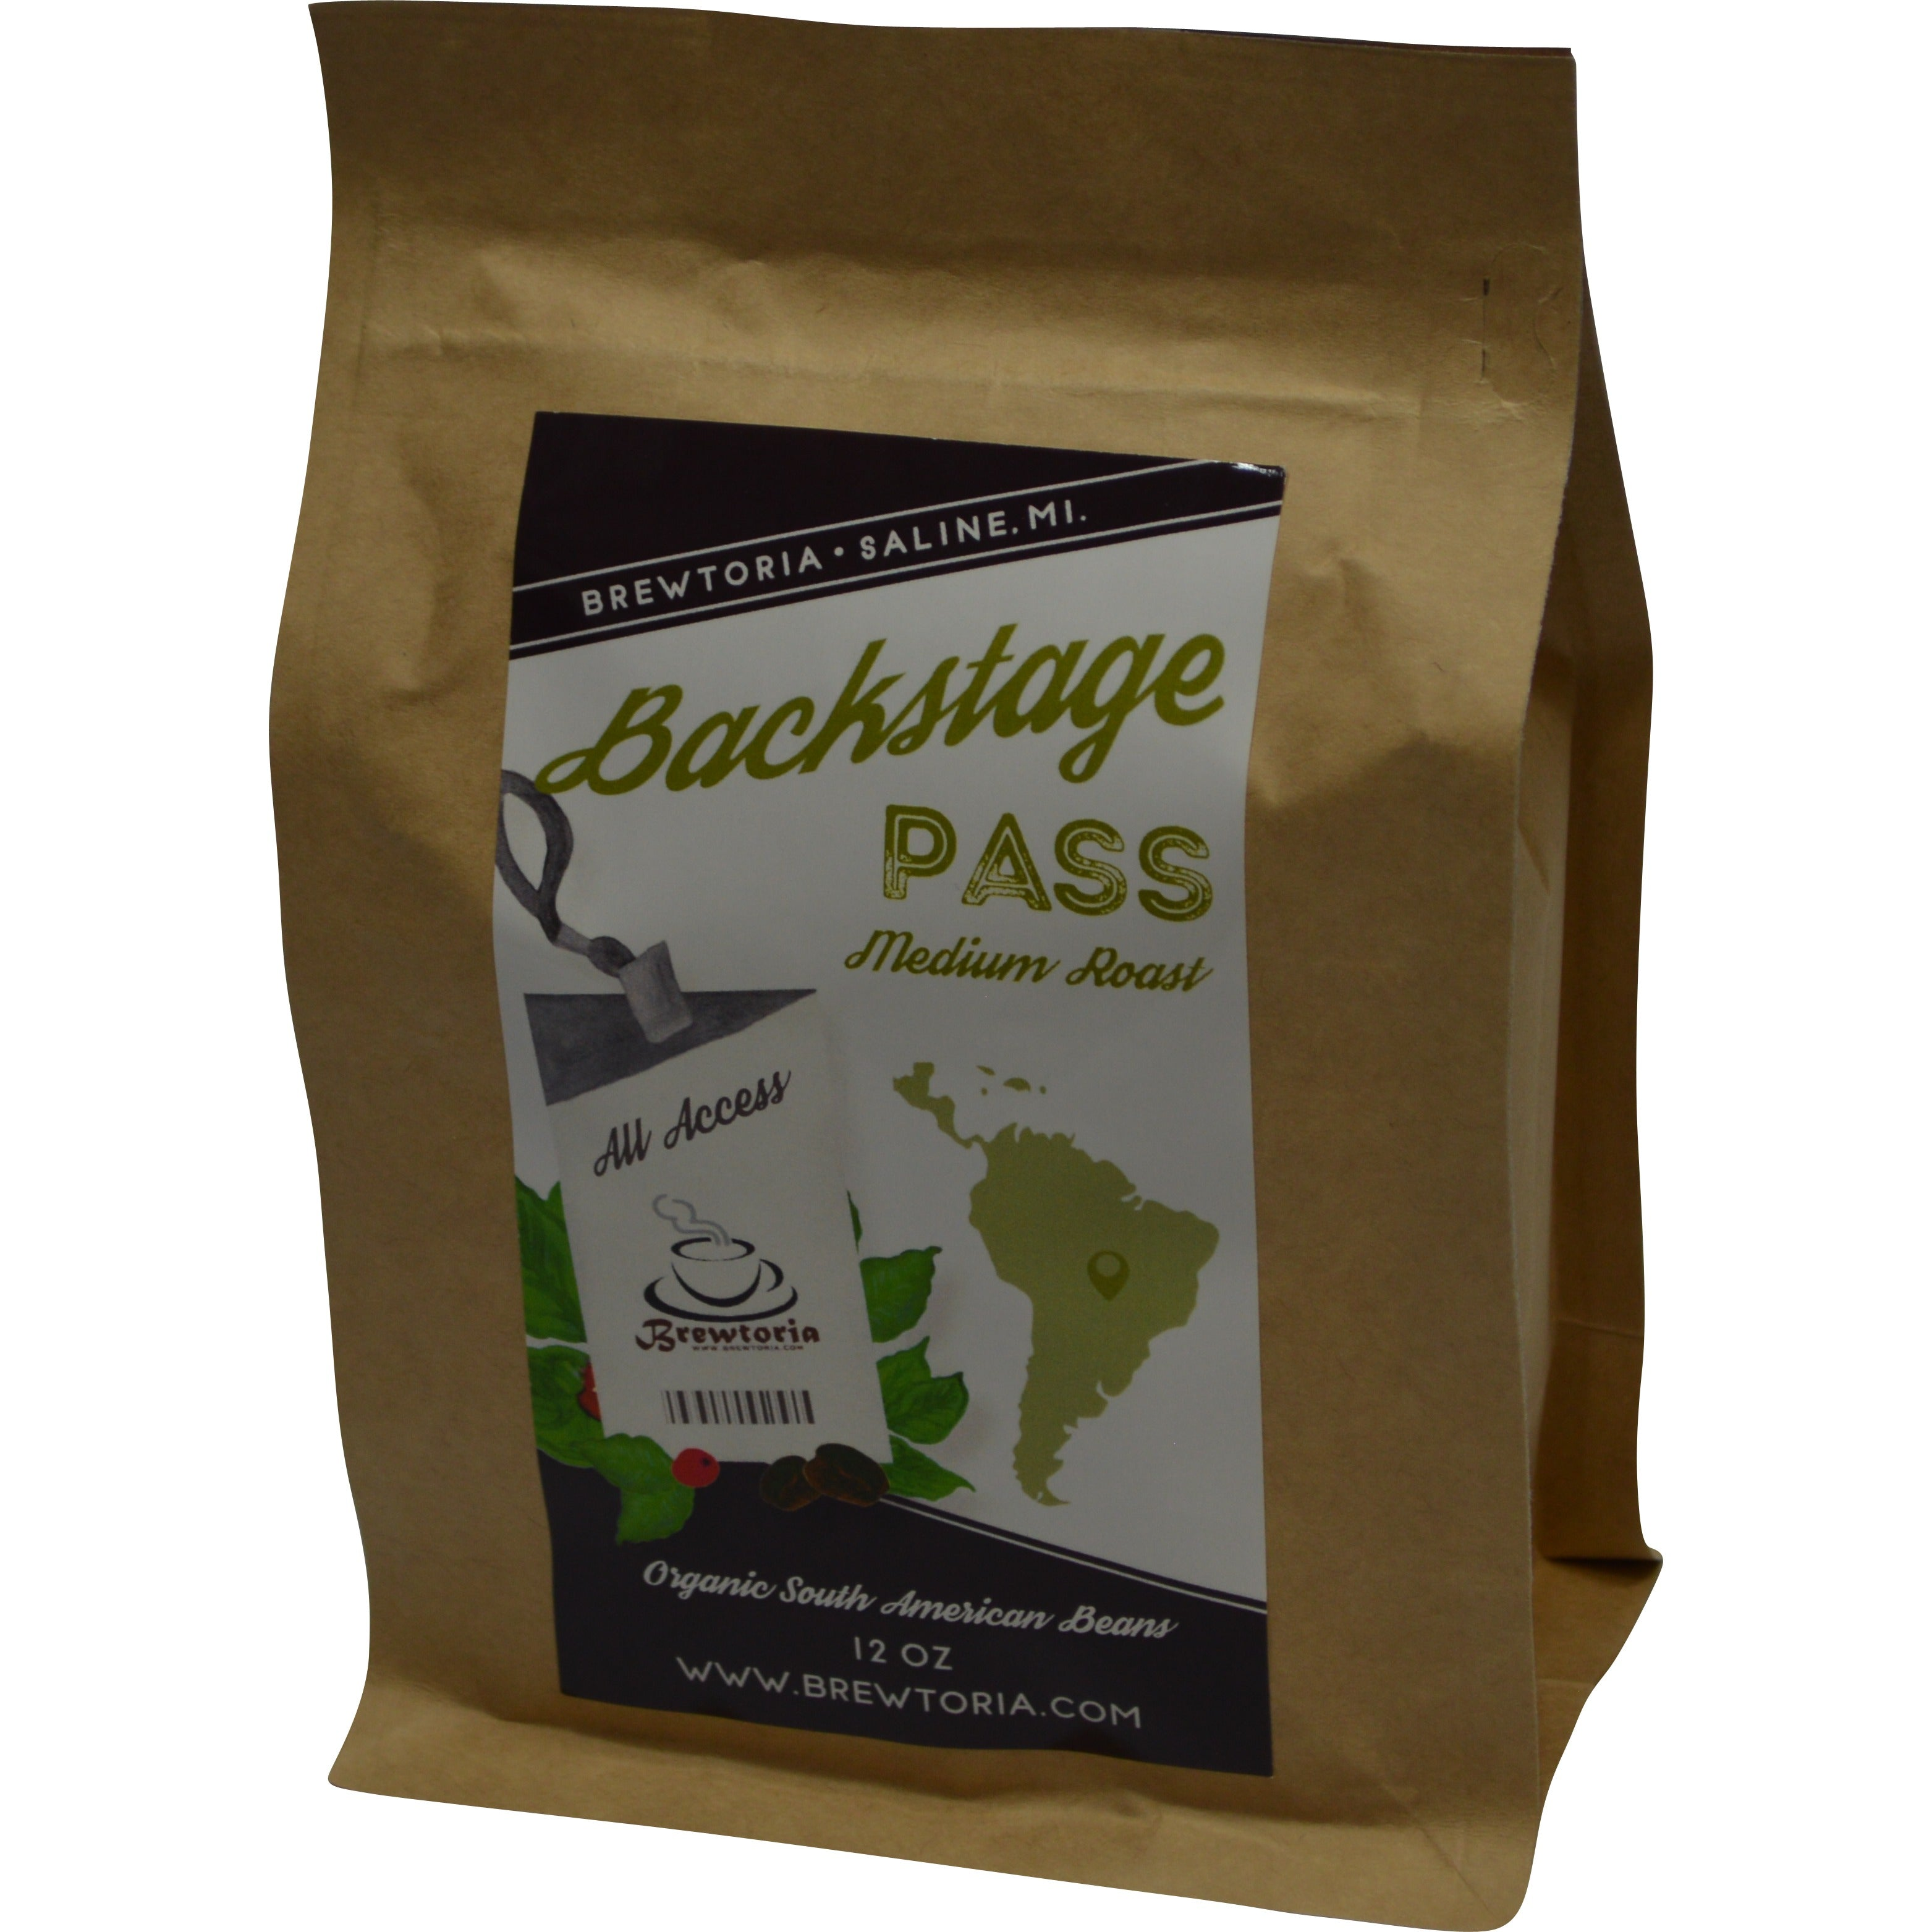 Backstage Pass - Colombian Med Roast 08b697159ef9